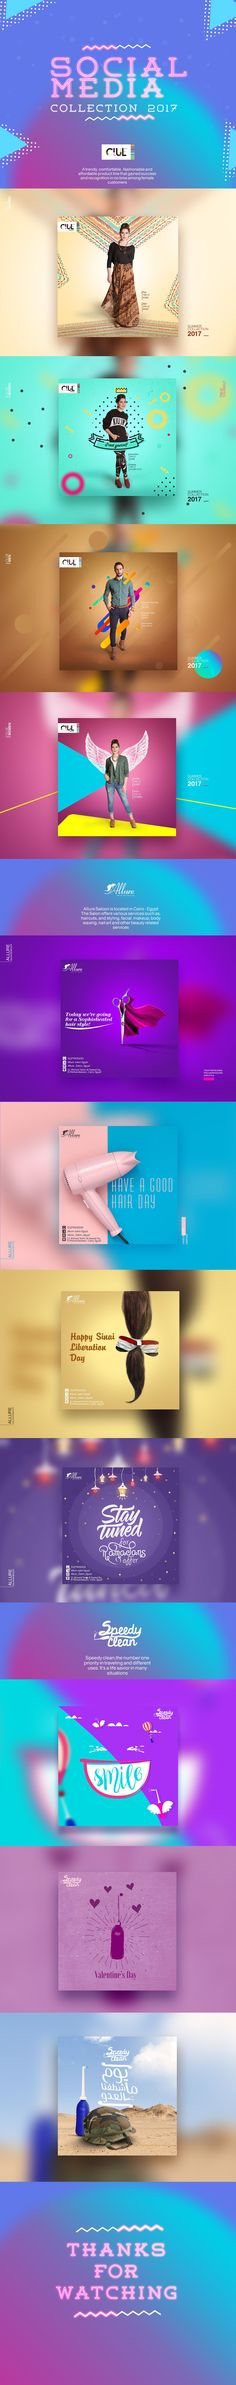 social media 2017 on Behance - Love a good success story? Learn how I went from zero to 1 million in sales in 5 months with an e-commerce store. #socialmediaideas